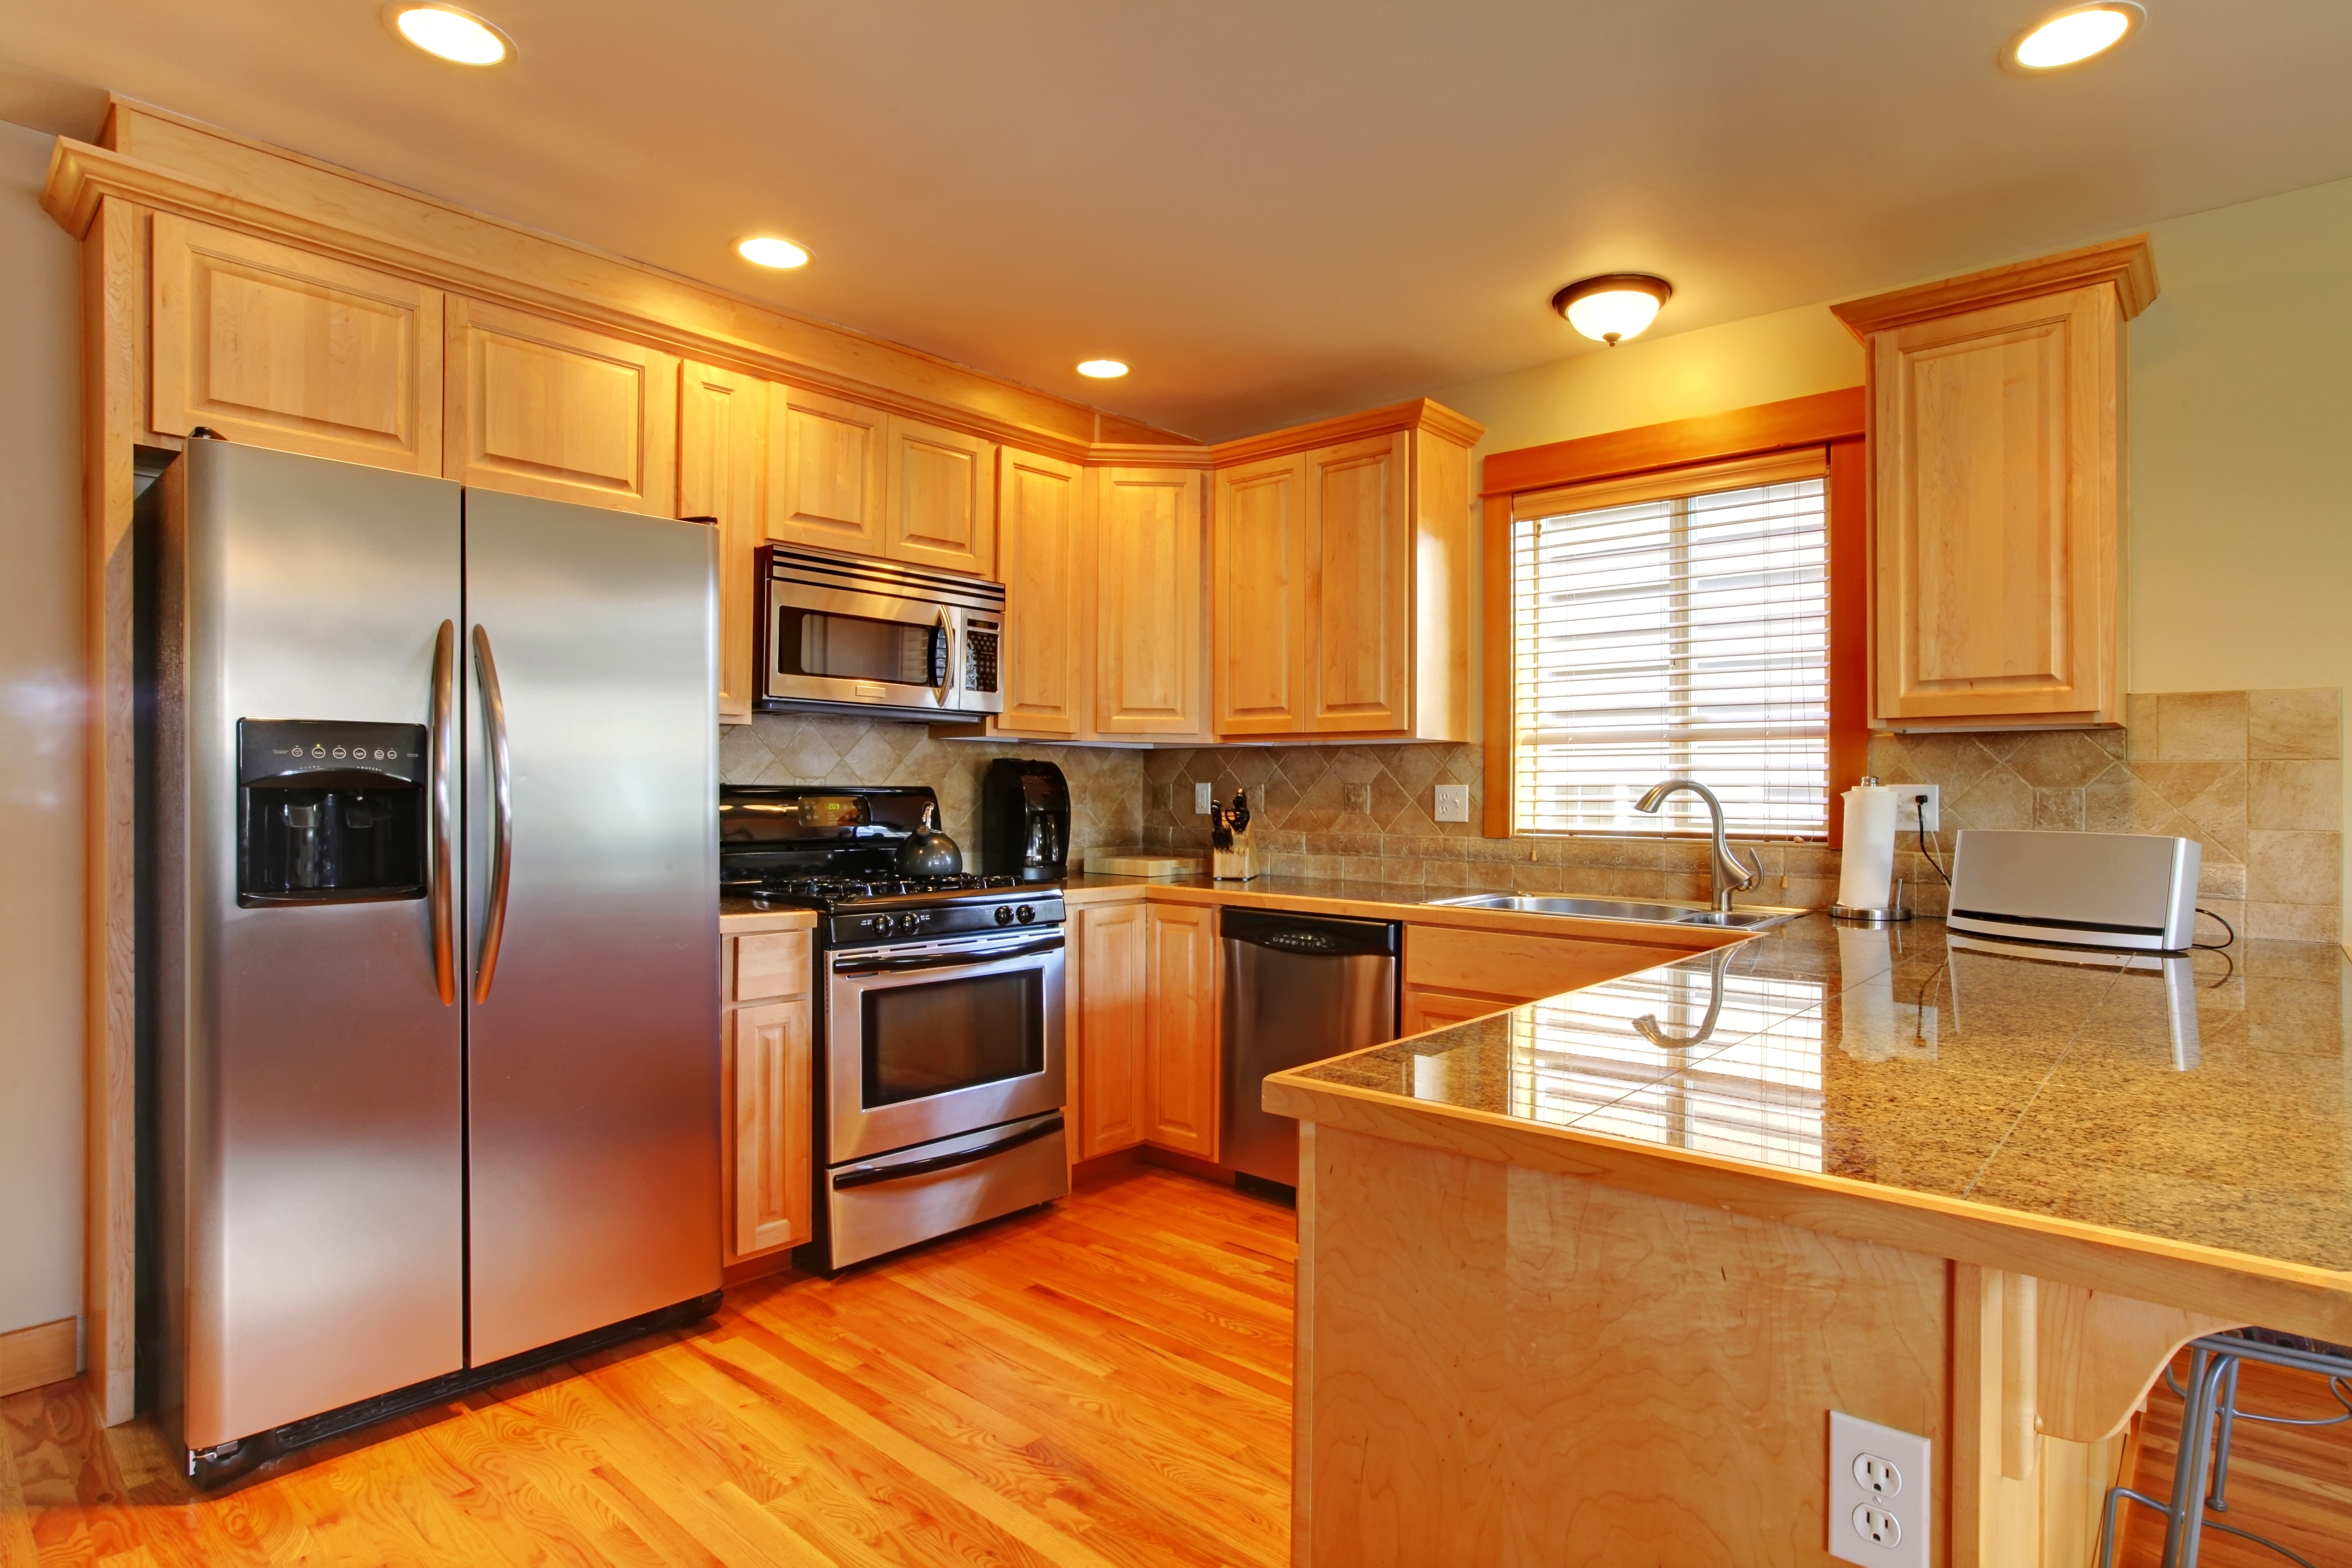 Golden maple cabinets kitchen with new appliances, maintenance